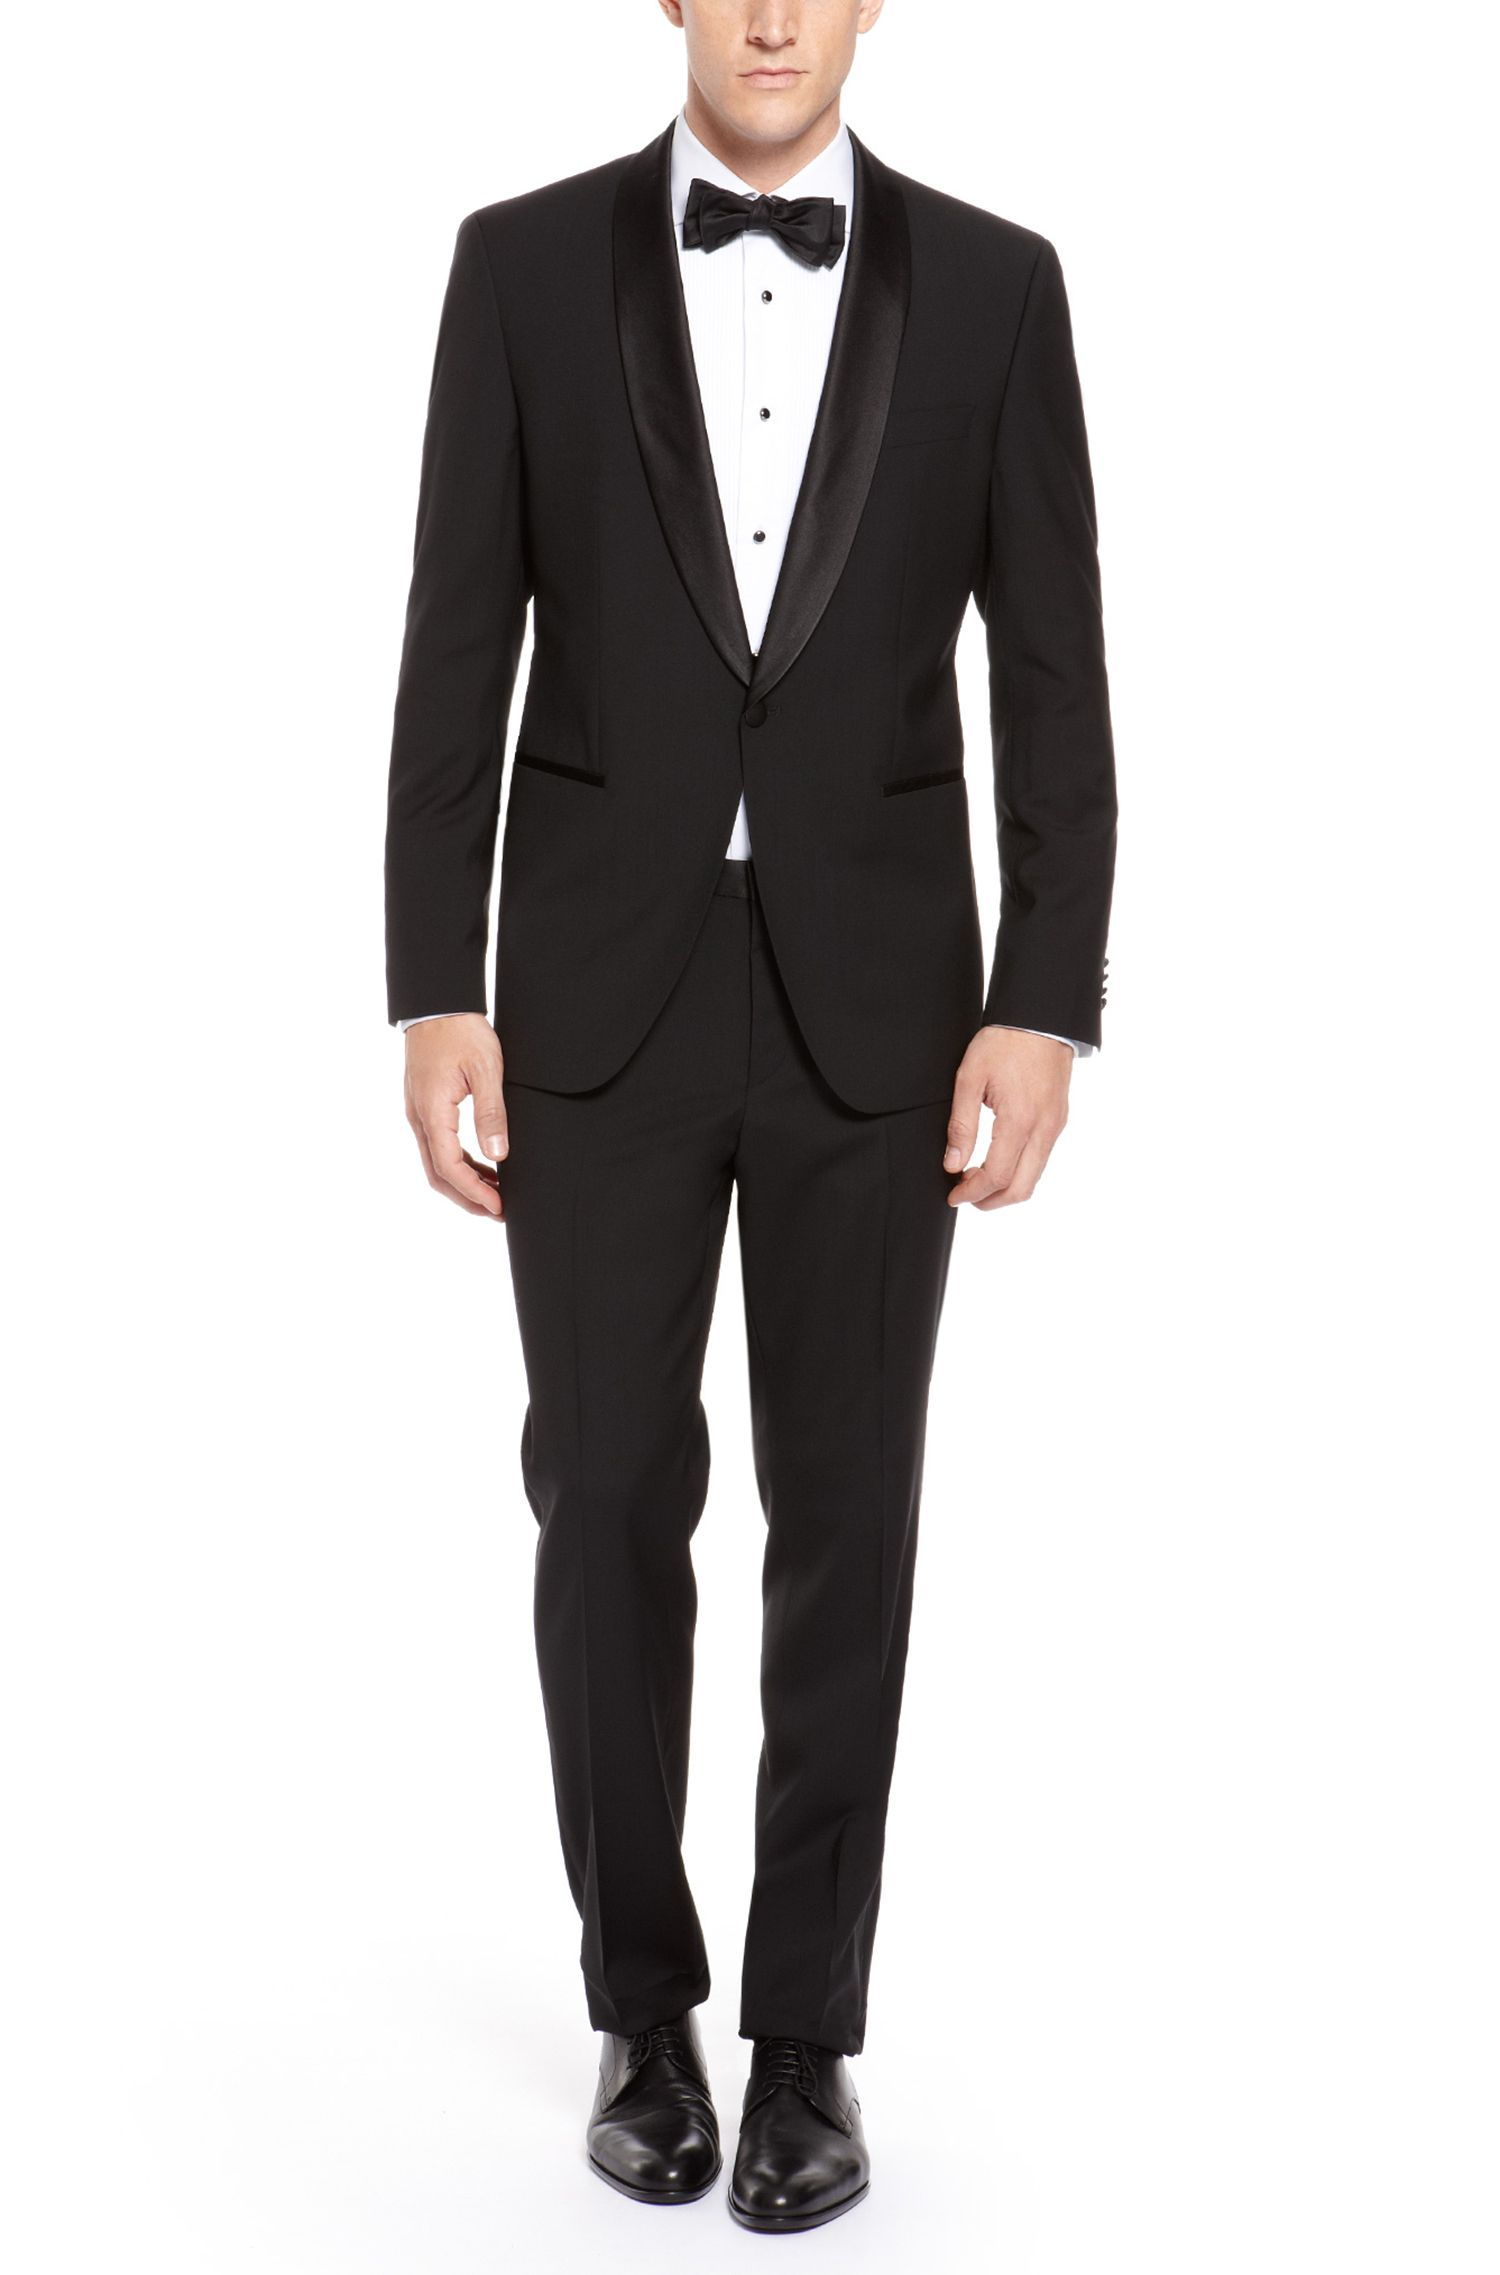 'Sky/Gala' | Regular Fit, Virgin Wool Shawl Collar Tuxedo